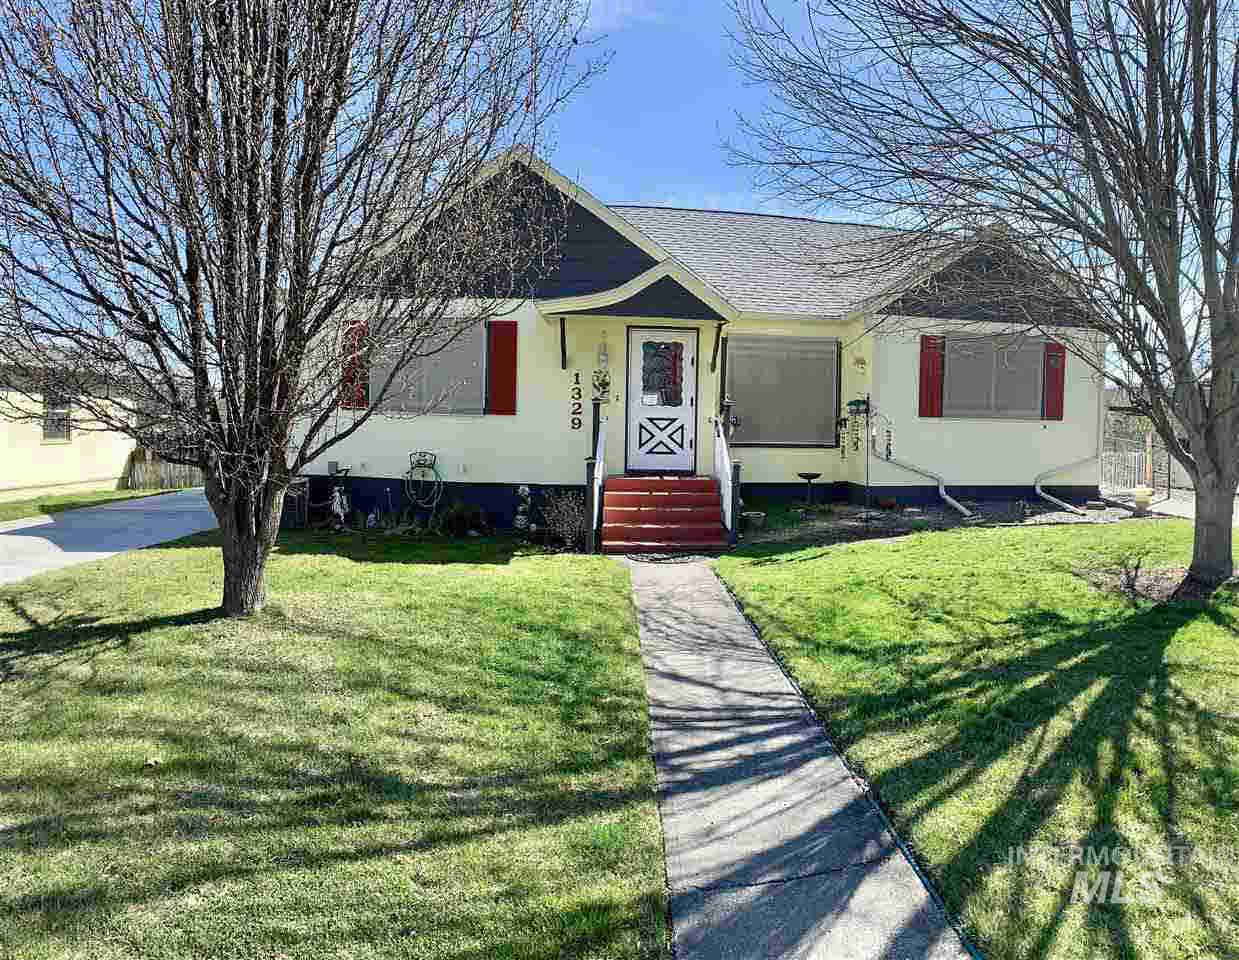 1329 5th St, Clarkston, Washington 99403, 5 Bedrooms, 3 Bathrooms, Residential For Sale, Price $189,500, 314739